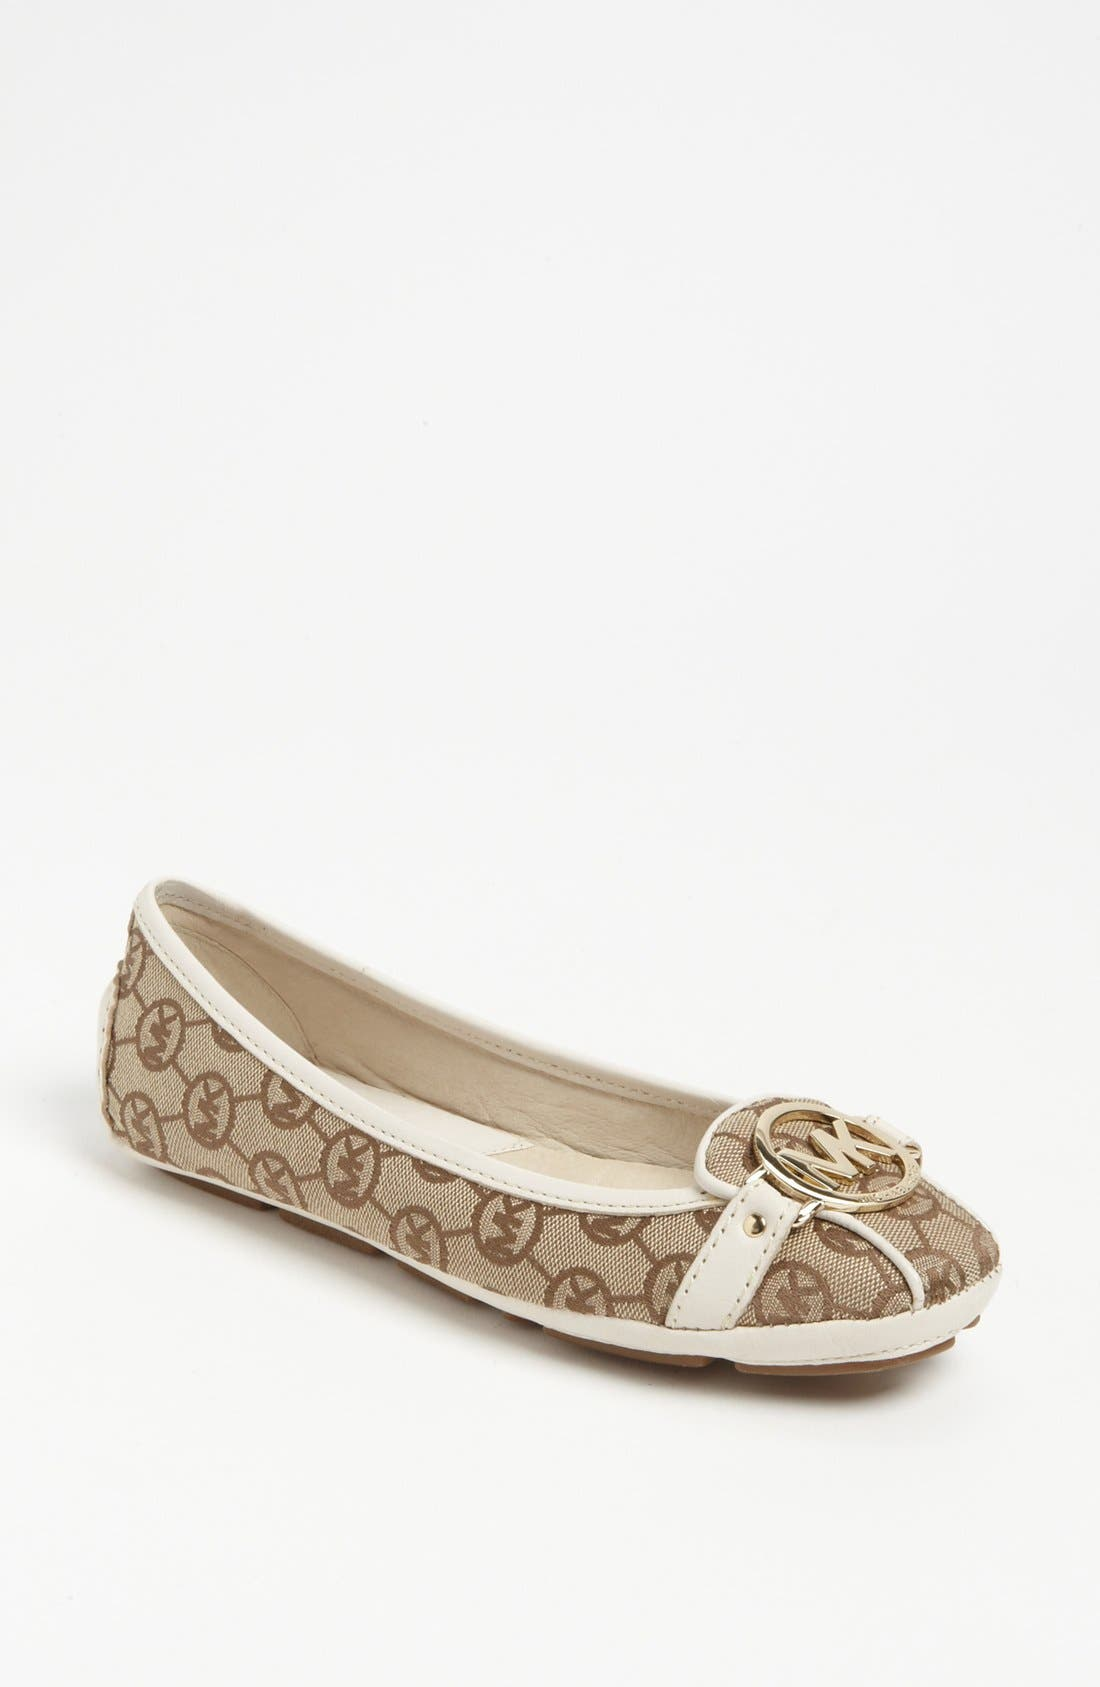 Main Image - MICHAEL Michael Kors 'Fulton' Moccasin Slip-On